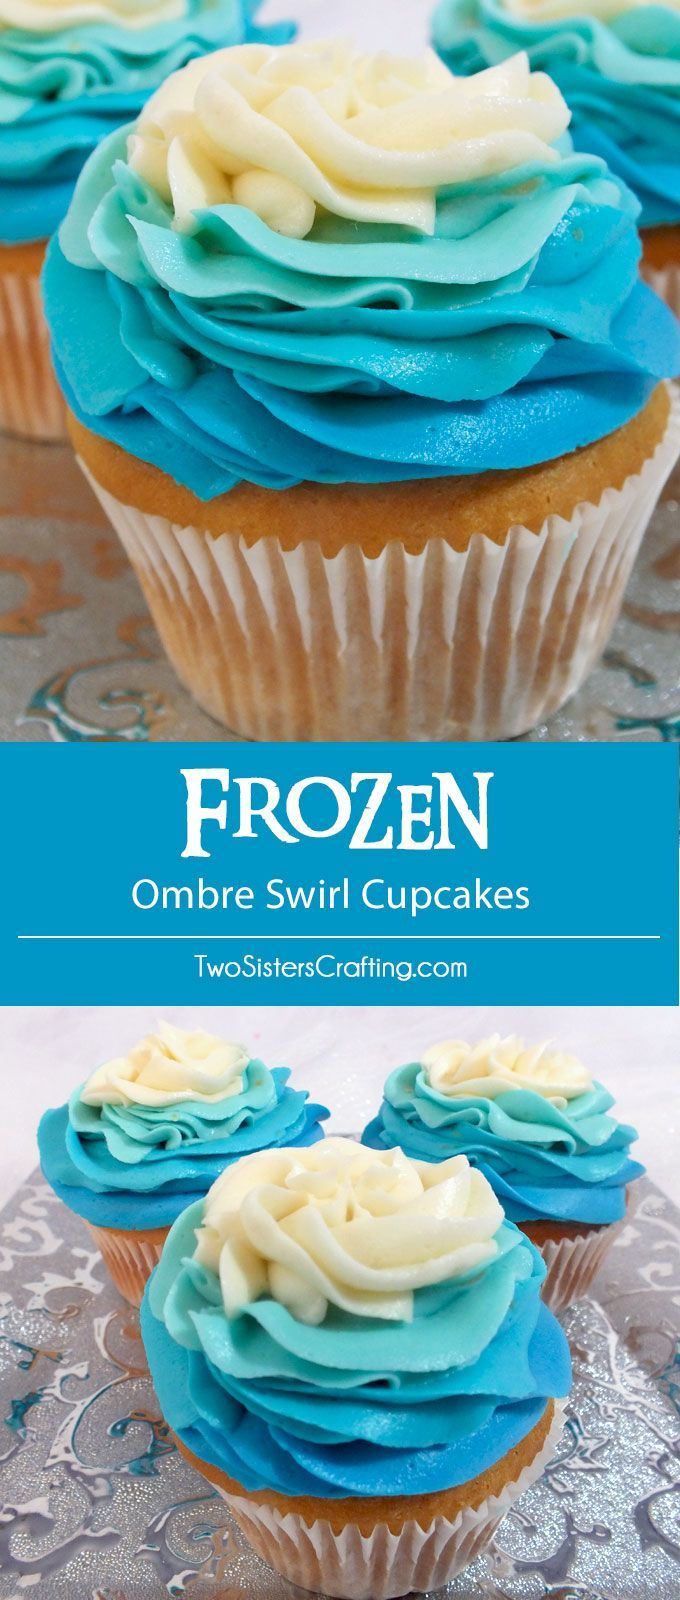 These Frozen Ombre Swirl Cupcakes will be the star of the Dessert Table at your Frozen Birthday party. So gorgeous, so delicious, so easy to make, it is a cupcake fit for an Ice Queen. This special Frozen Party Treat is sure to be a hit with the Frozen fans at your party. Follow us for more great Frozen Party Ideas.